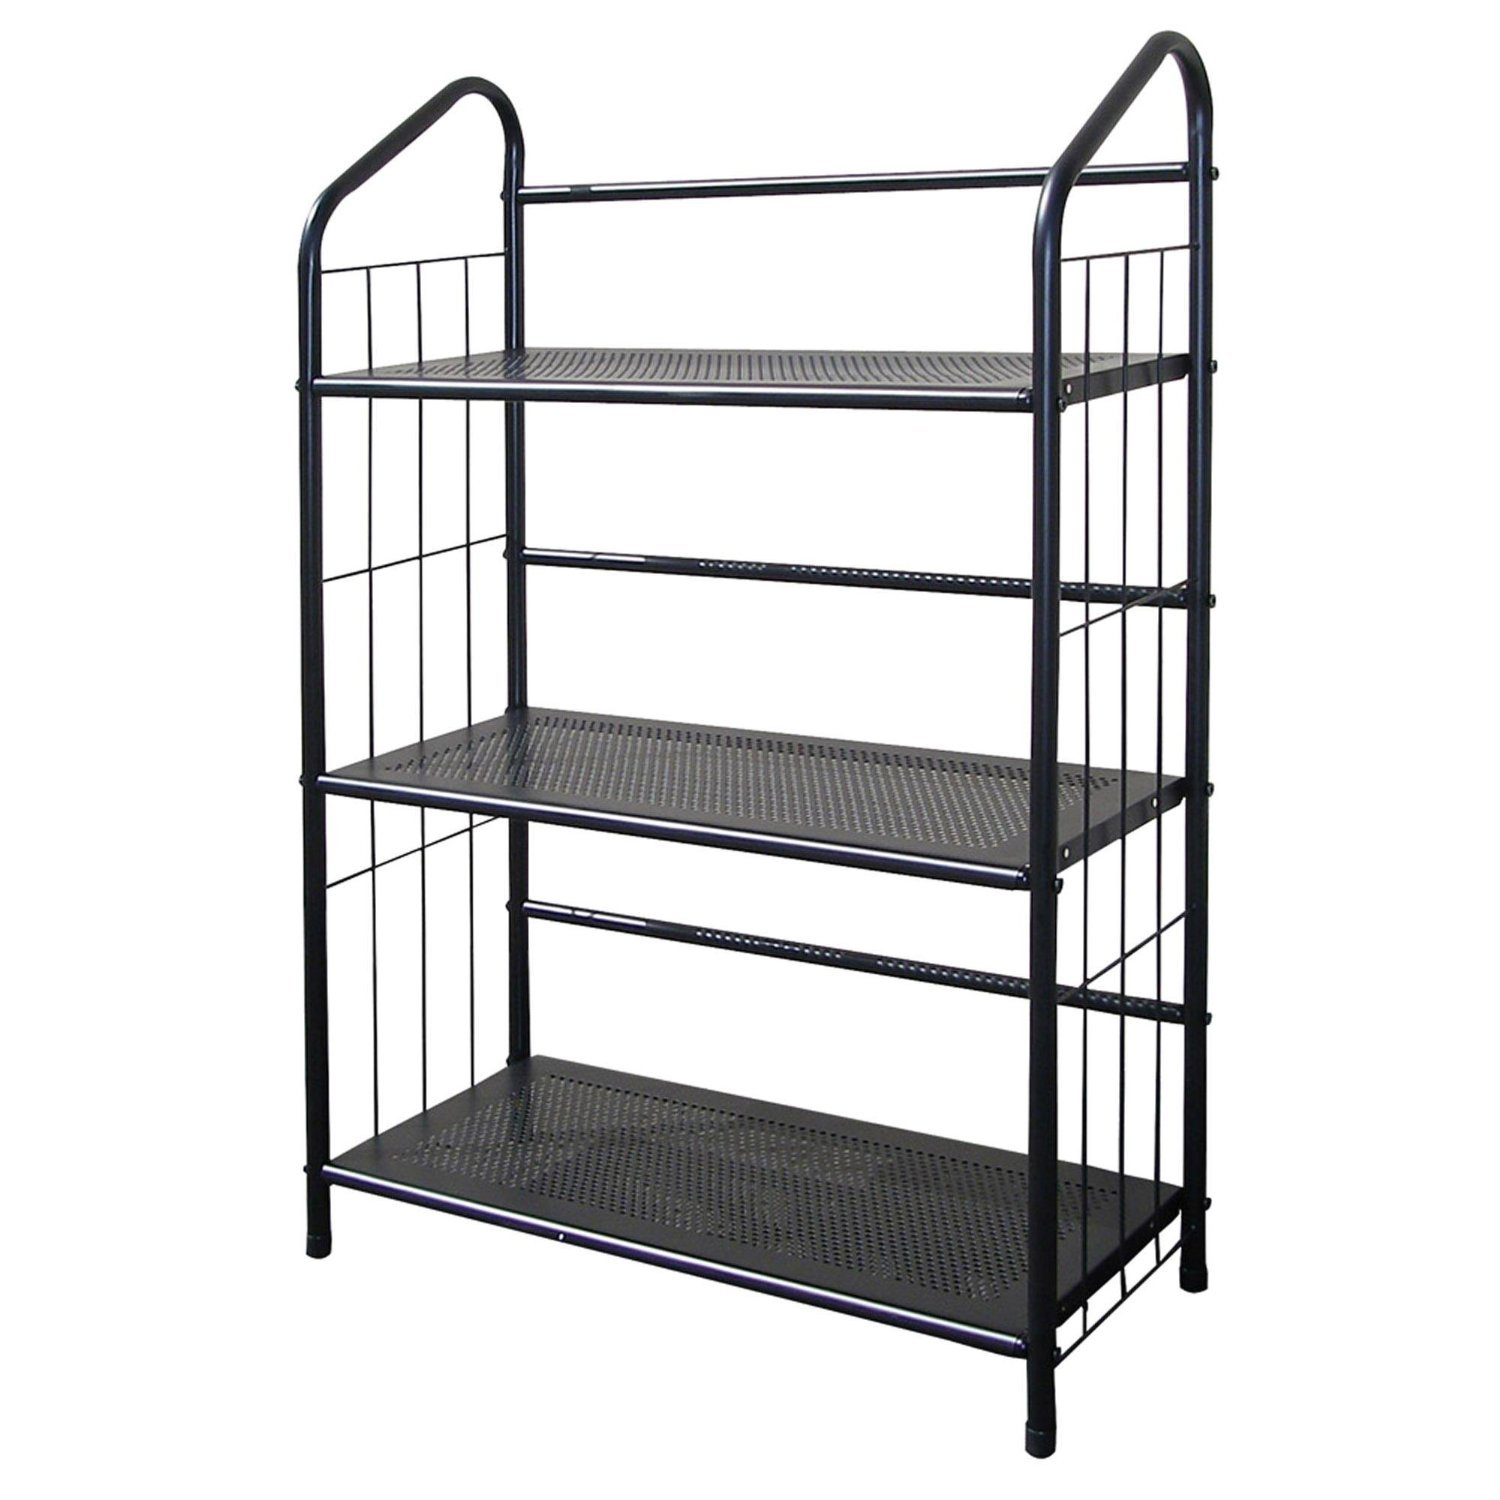 unbrand R597-4 FT597BK-4 Black Metal Book Shelf 4 Tier